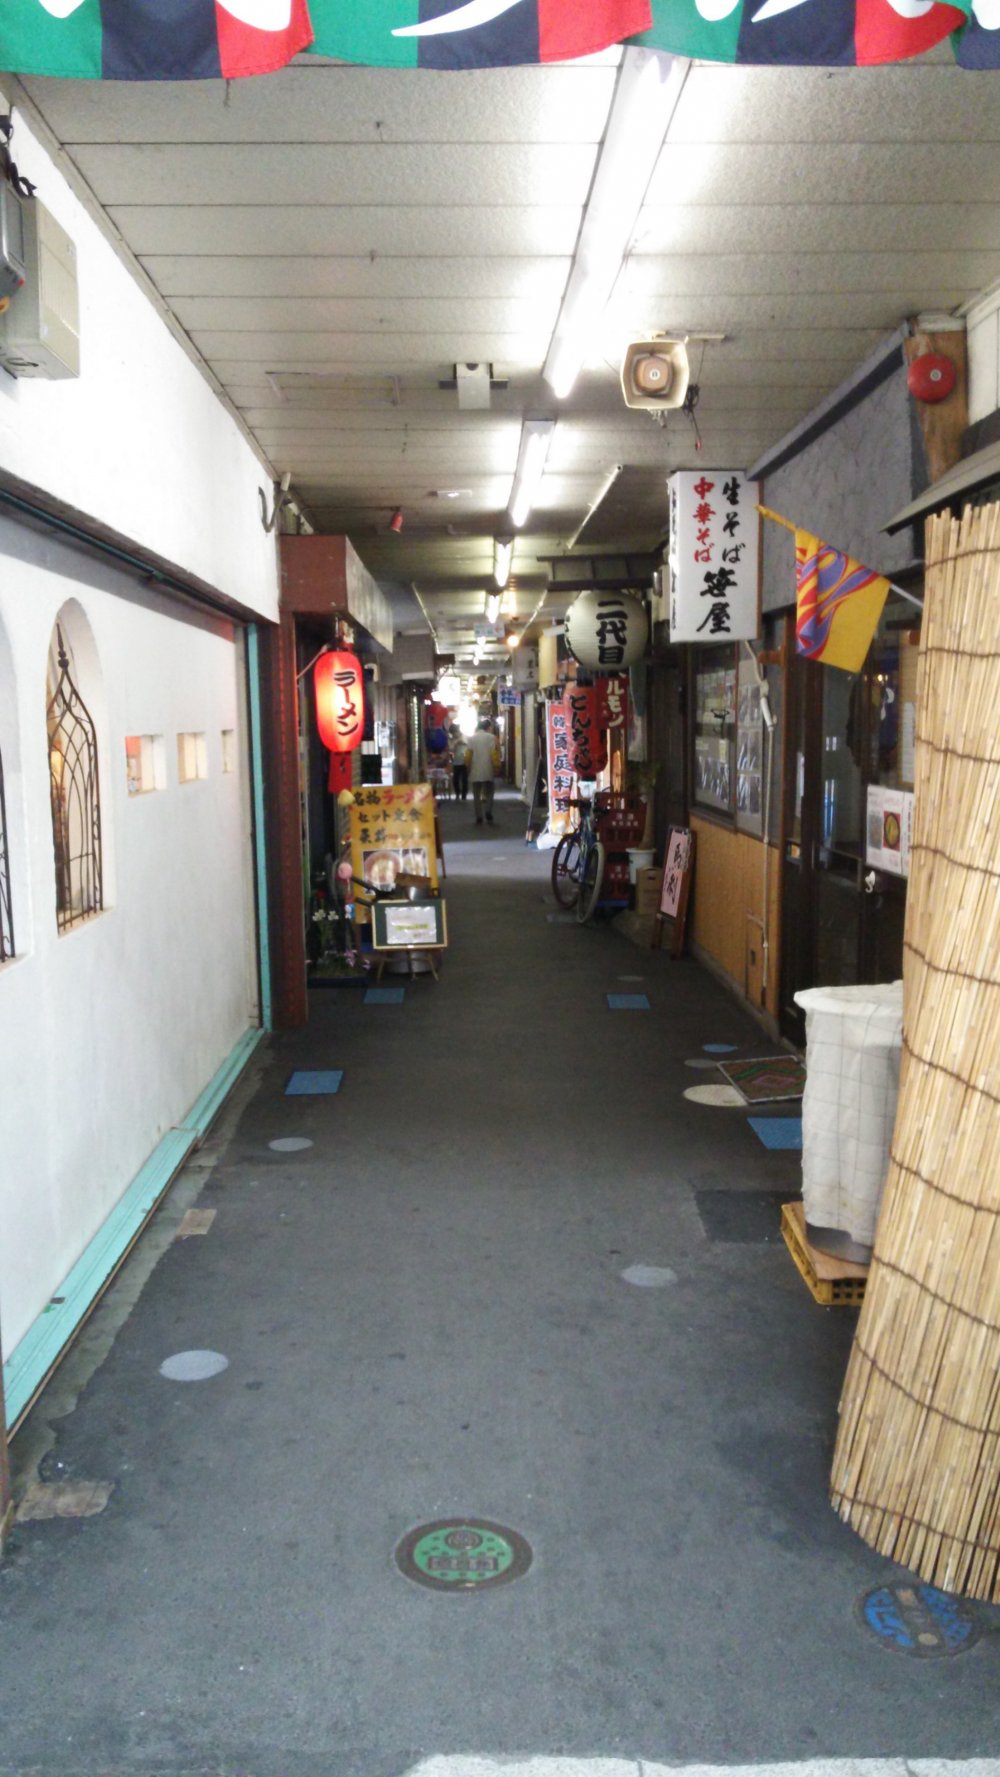 Inside are two parallel alleys that haven't changed much since the Showa Period, when they were first built.